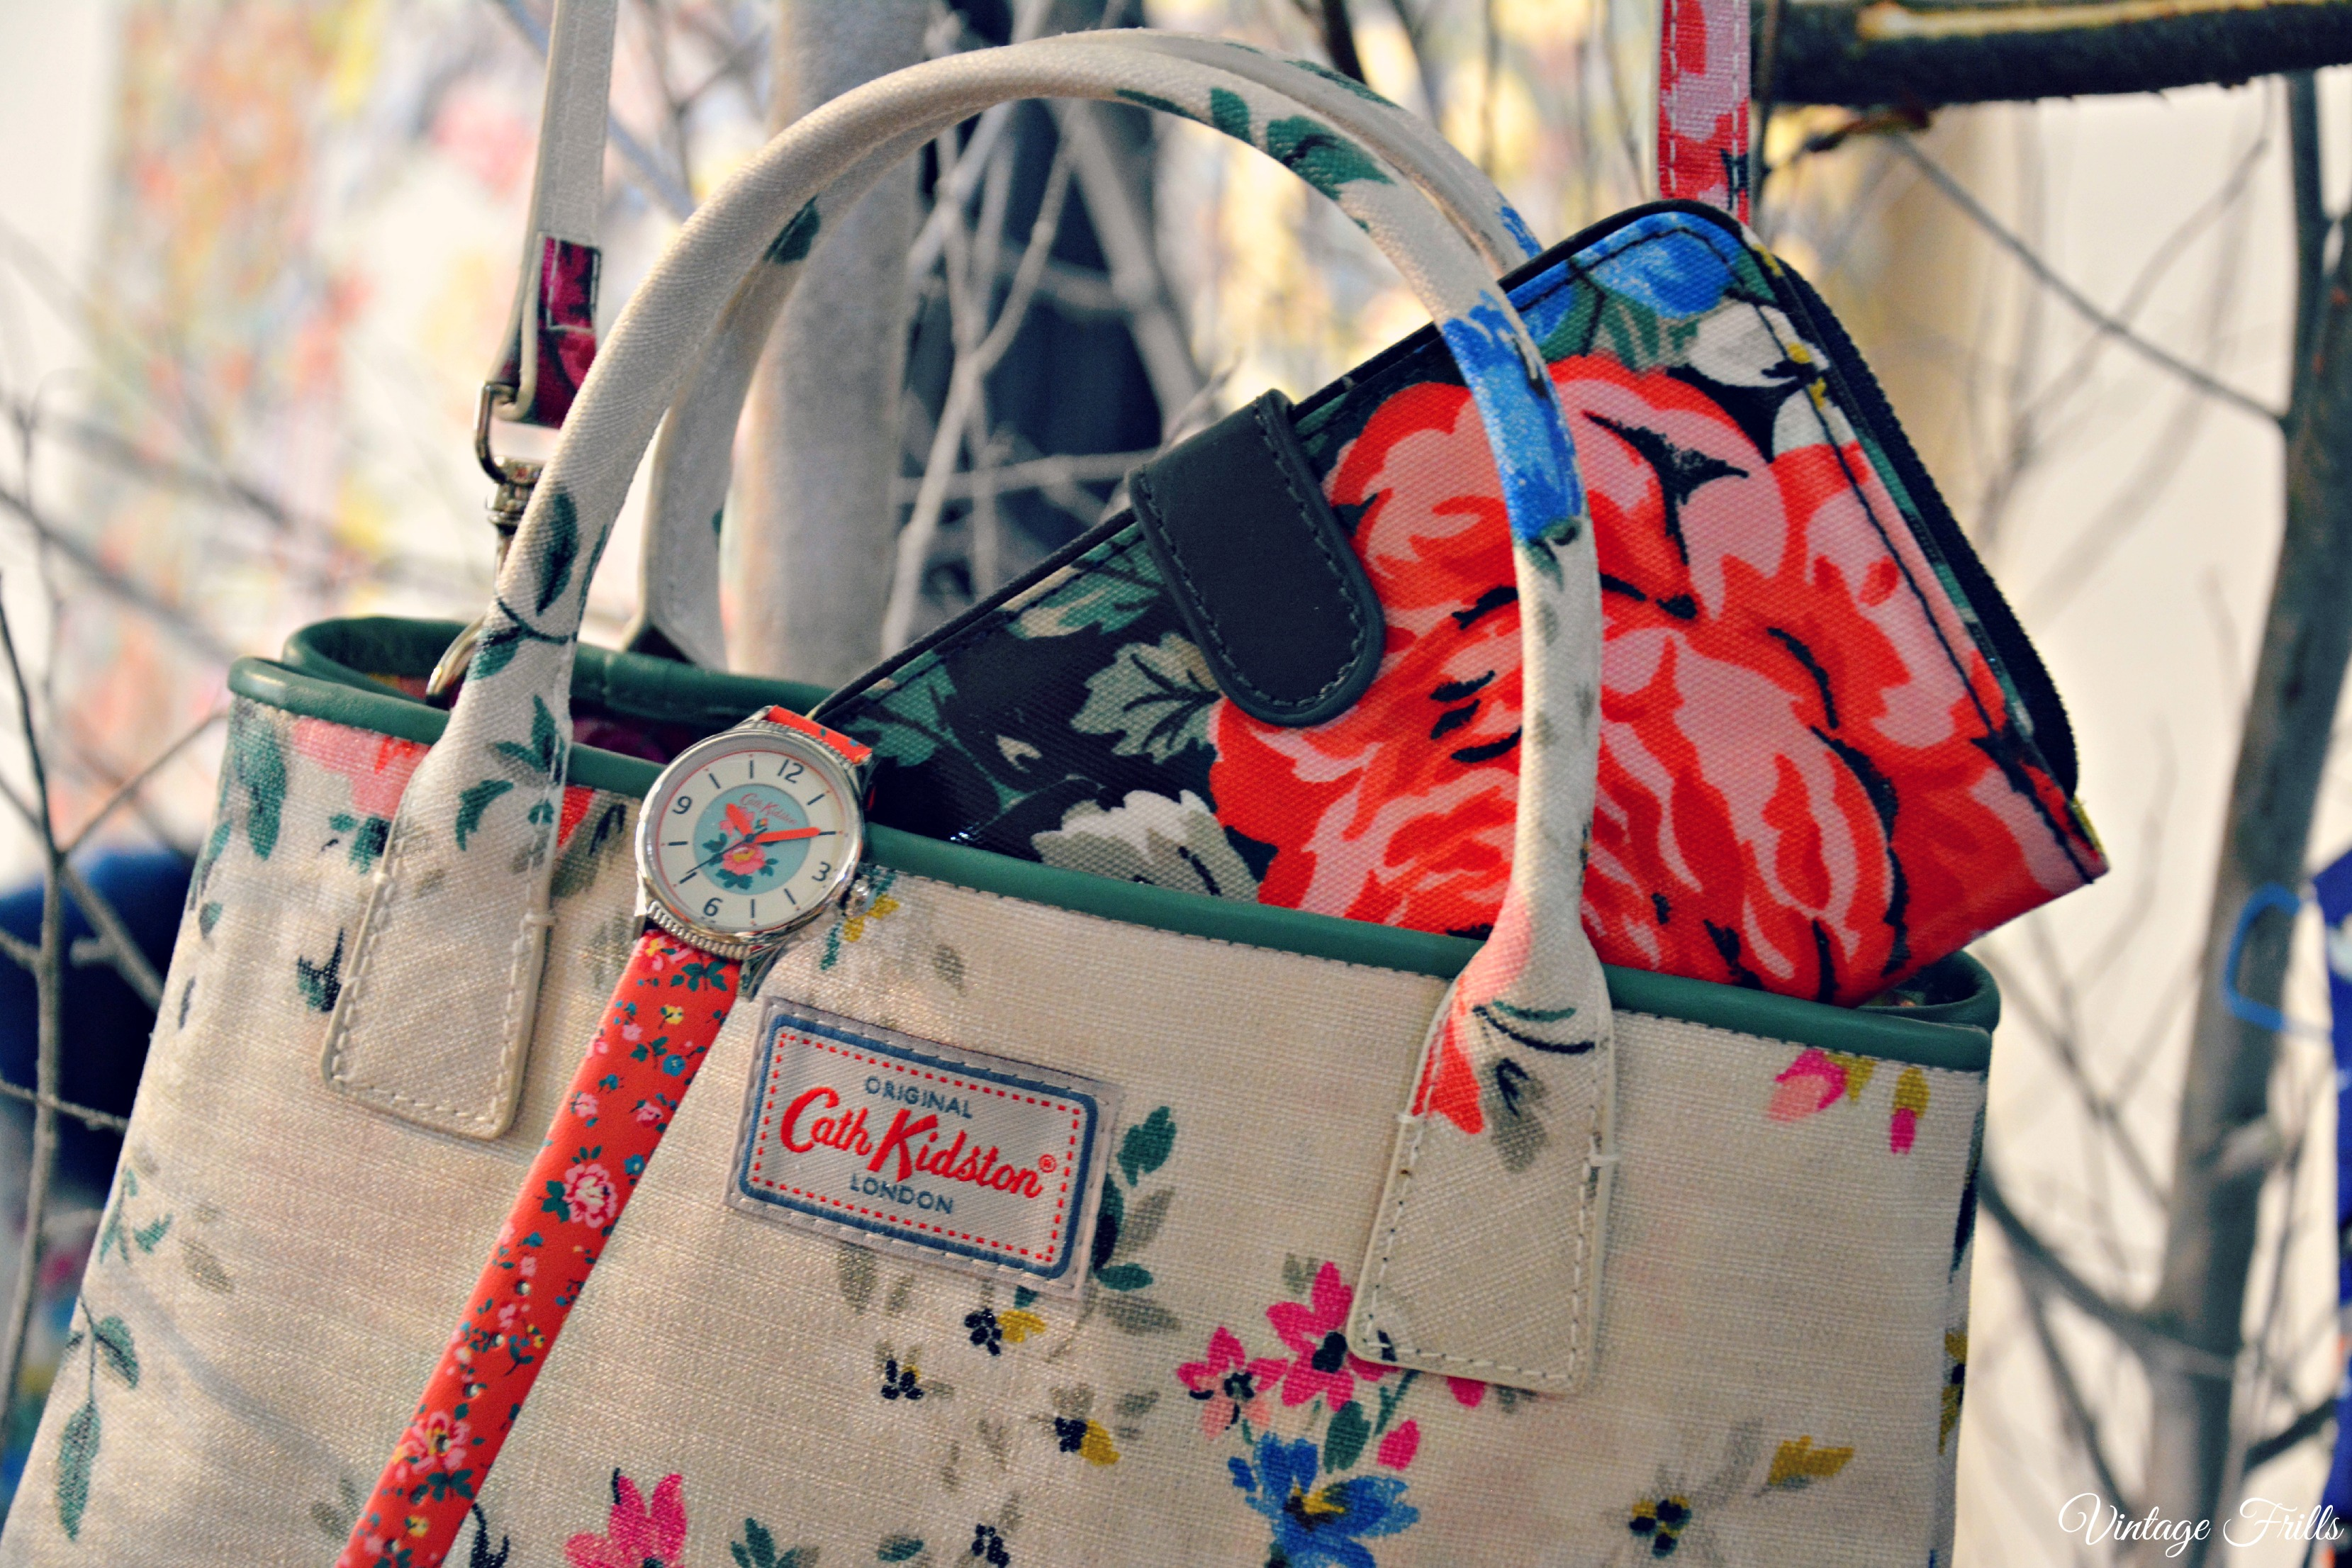 Cath Kidston AW15 Press Day - Watch